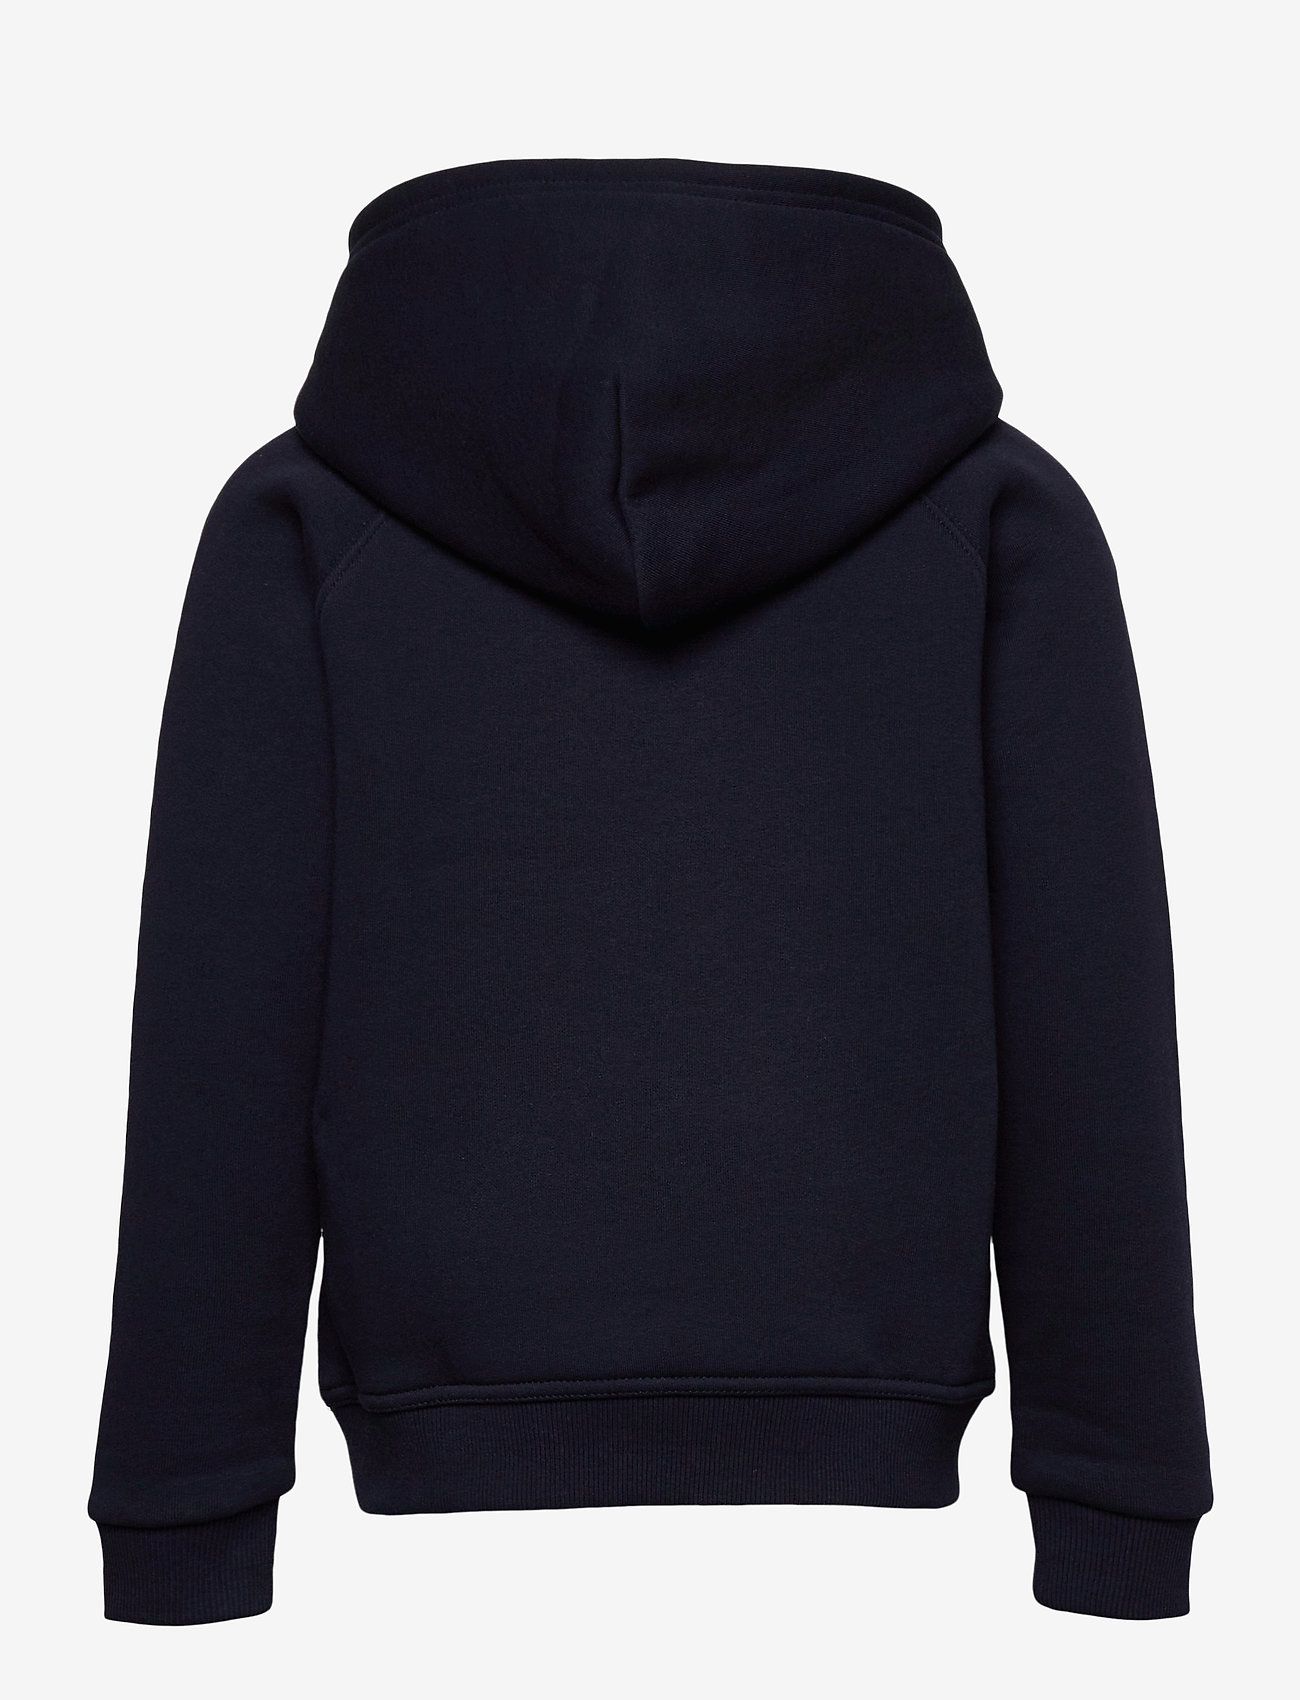 GANT - ARCHIVE SHIELD HOODIE - hoodies - evening blue - 1